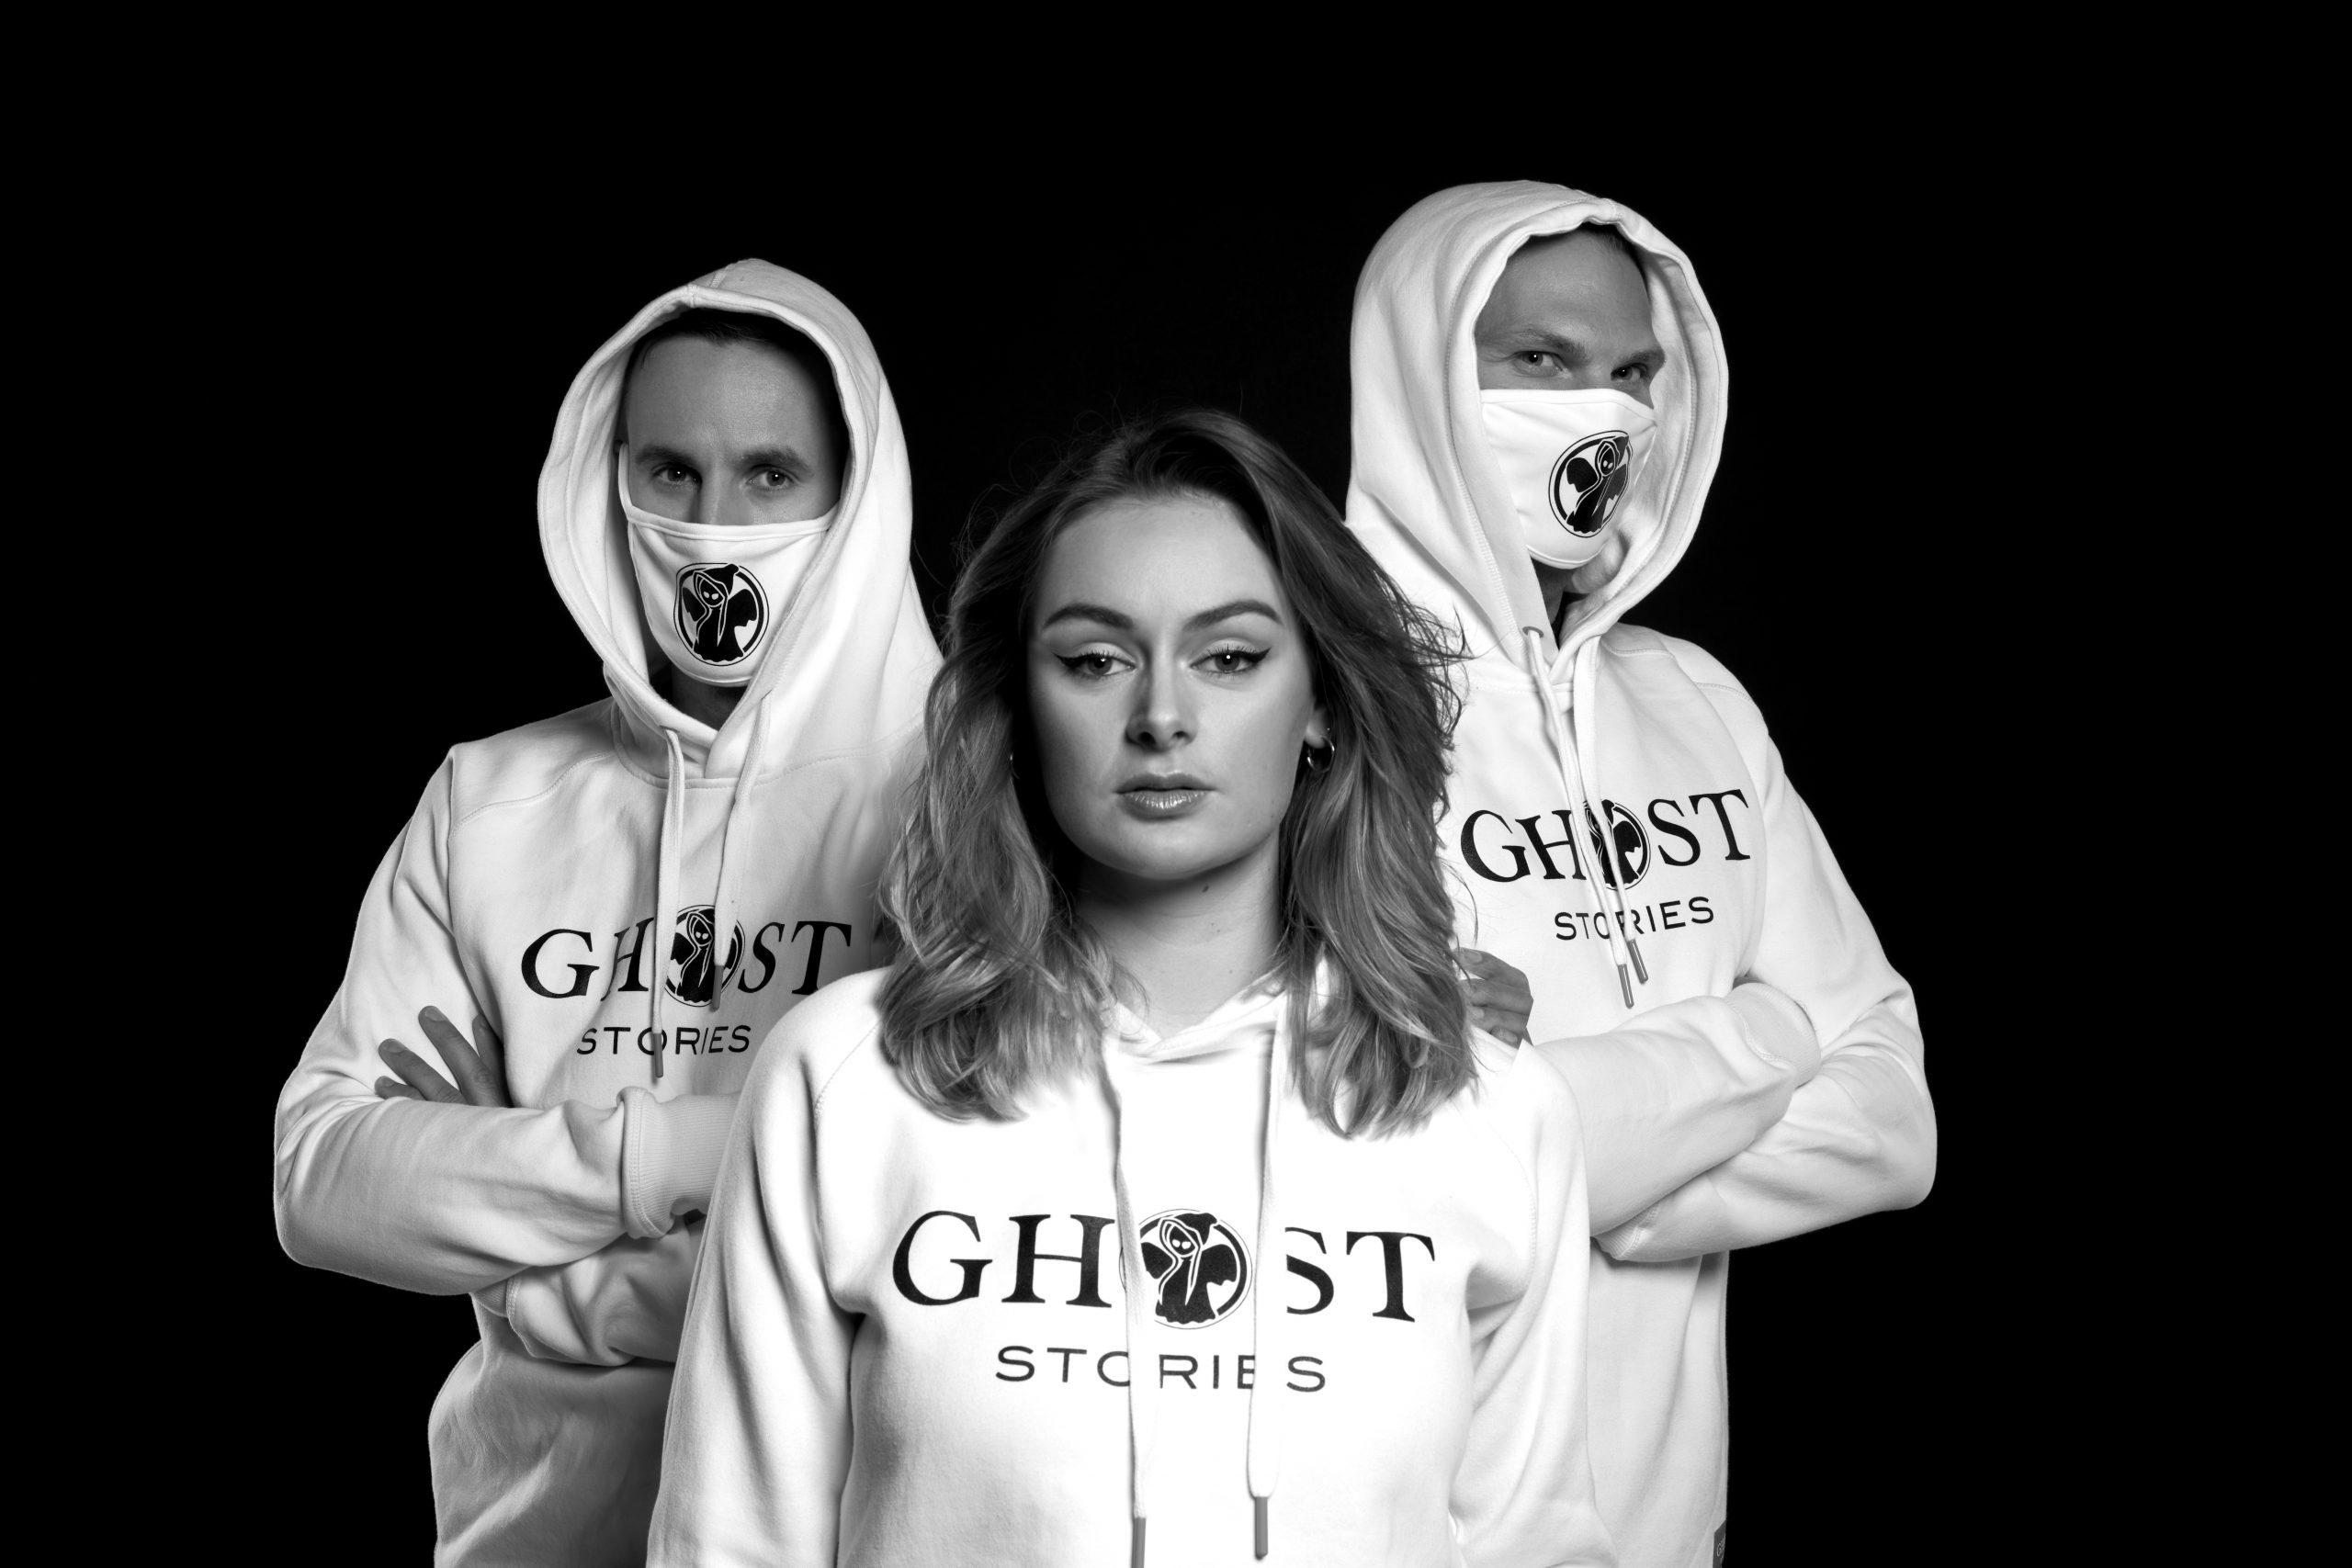 Ghost Stories Live